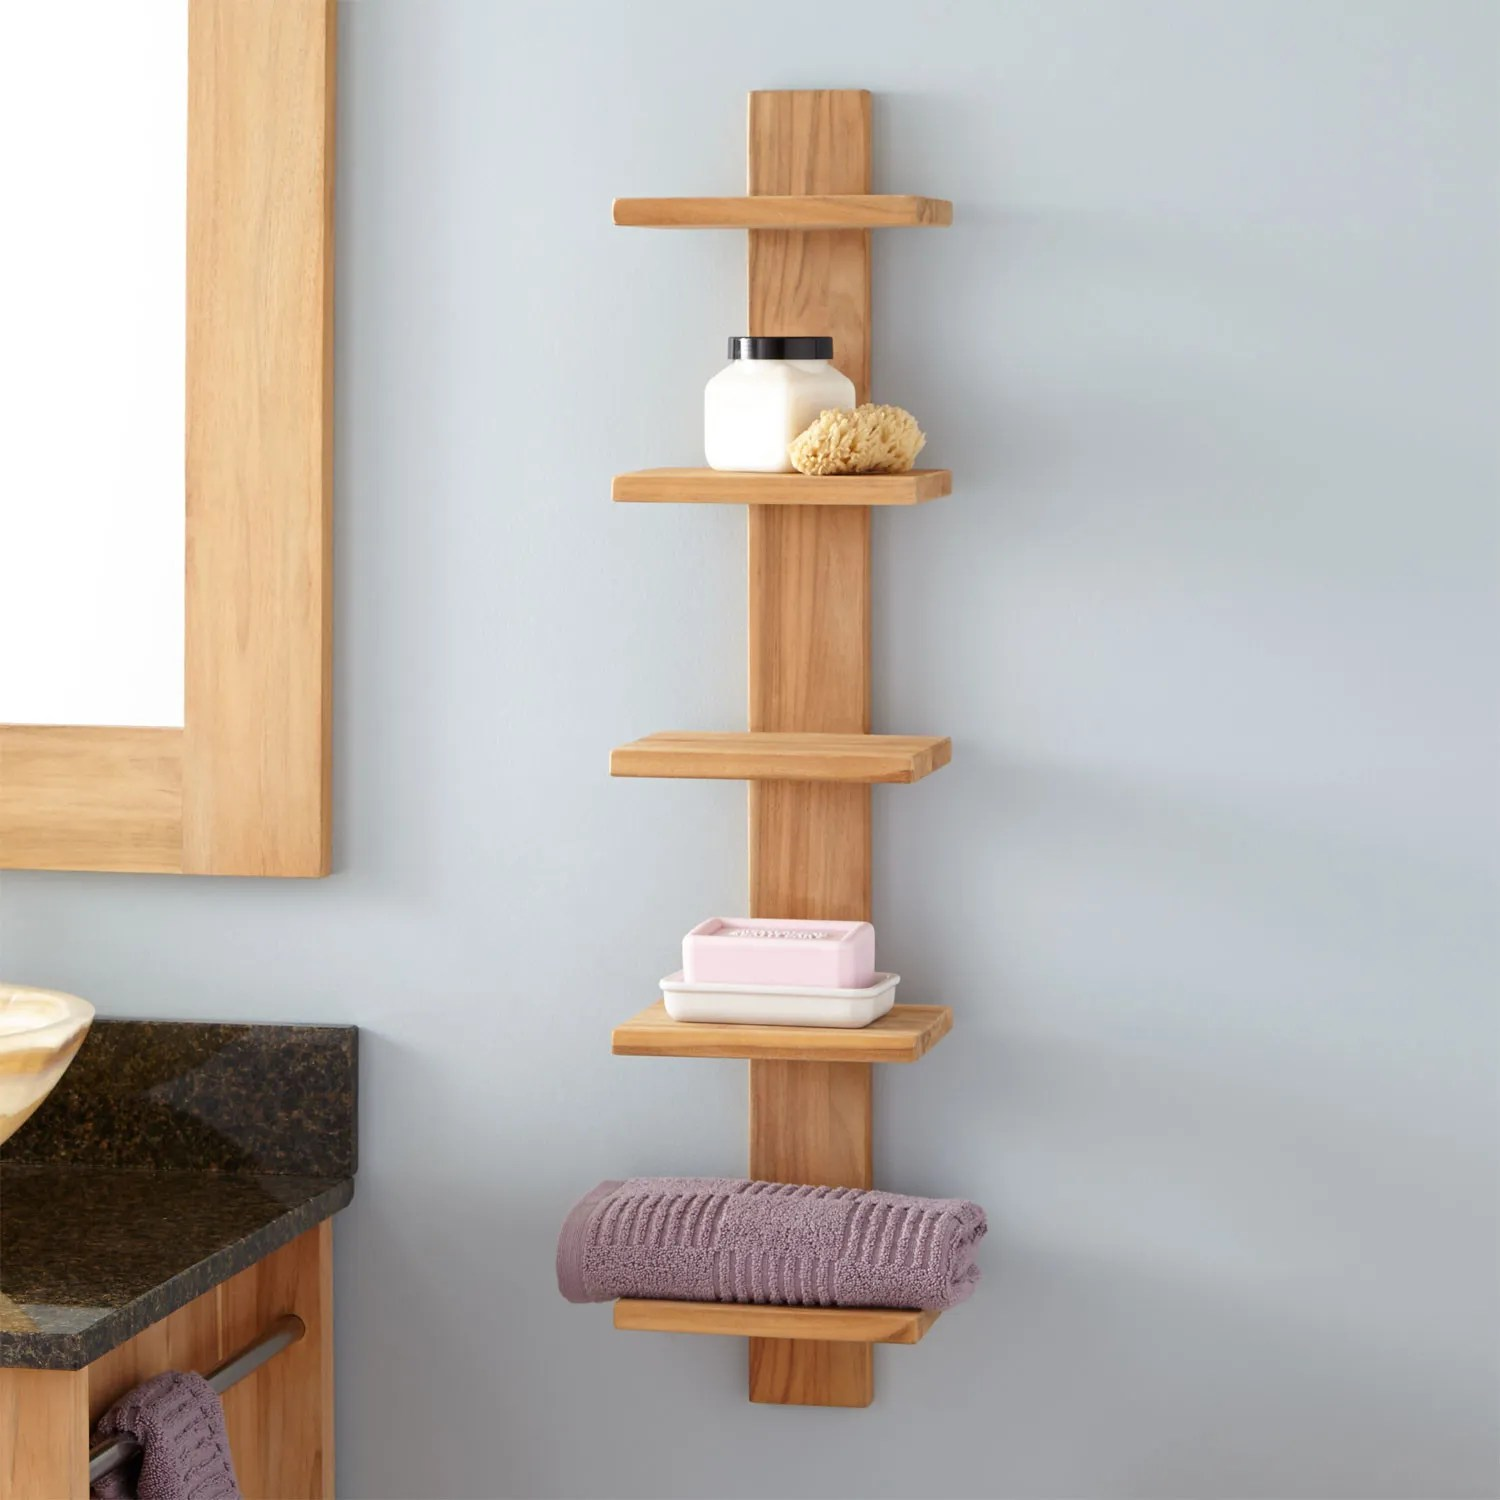 Soothing Conditions That Often Occur A Durable Wood That Is This Product Is Made Bastian Hanging Bathroom Teak Shelf Five Shelves Bathroom bathroom Hanging Shelves In Bathroom